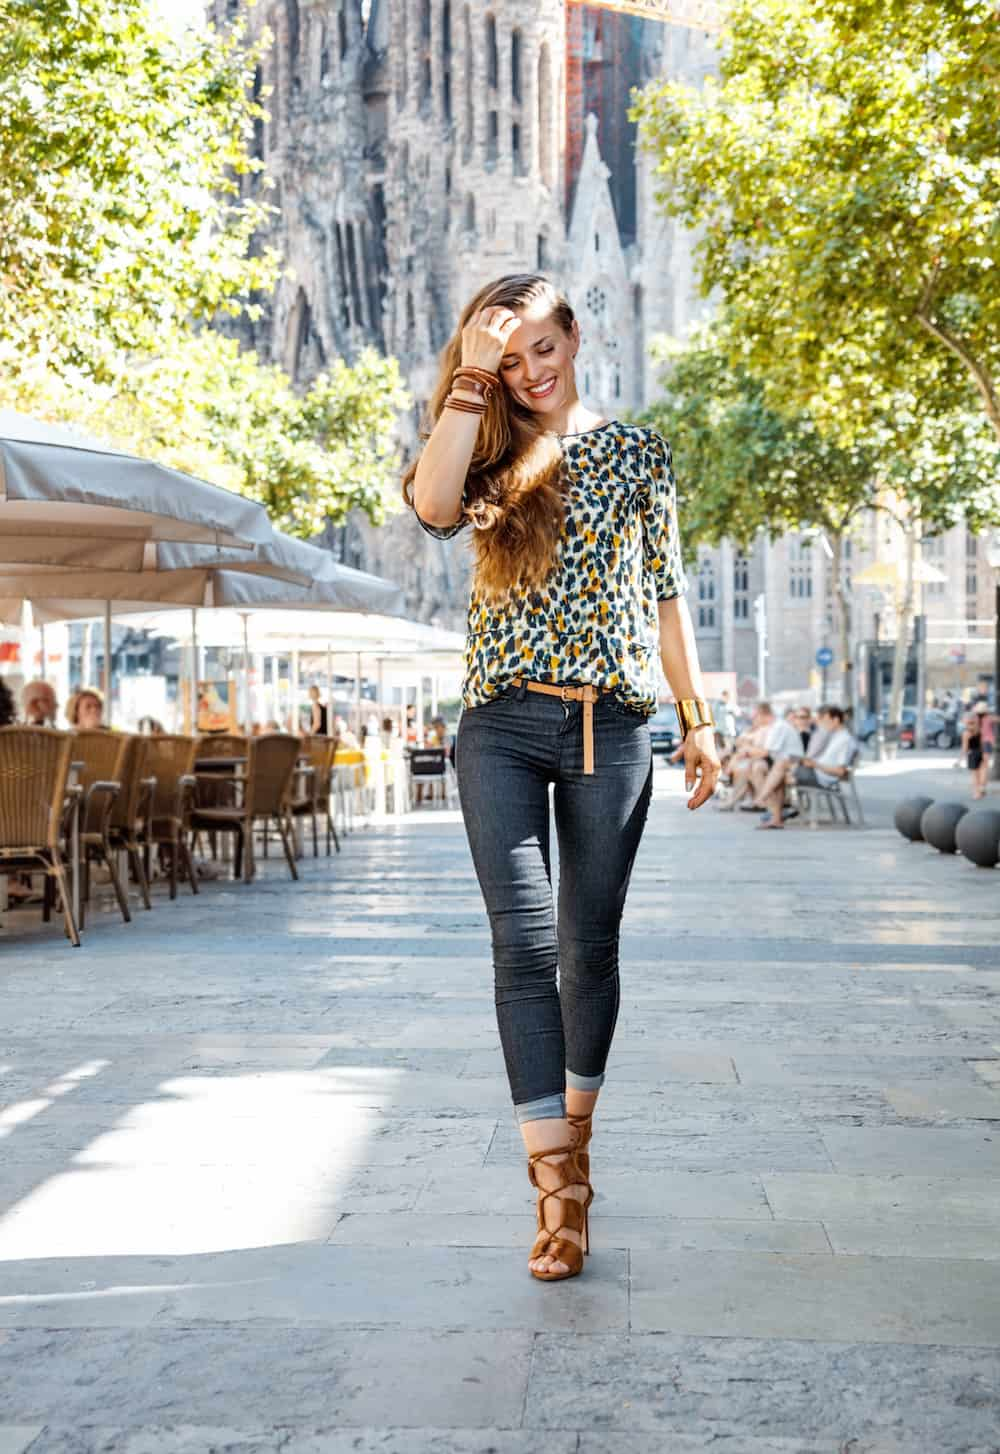 92e99d1ec4e How to Dress in Barcelona According to Season - Latitude 41